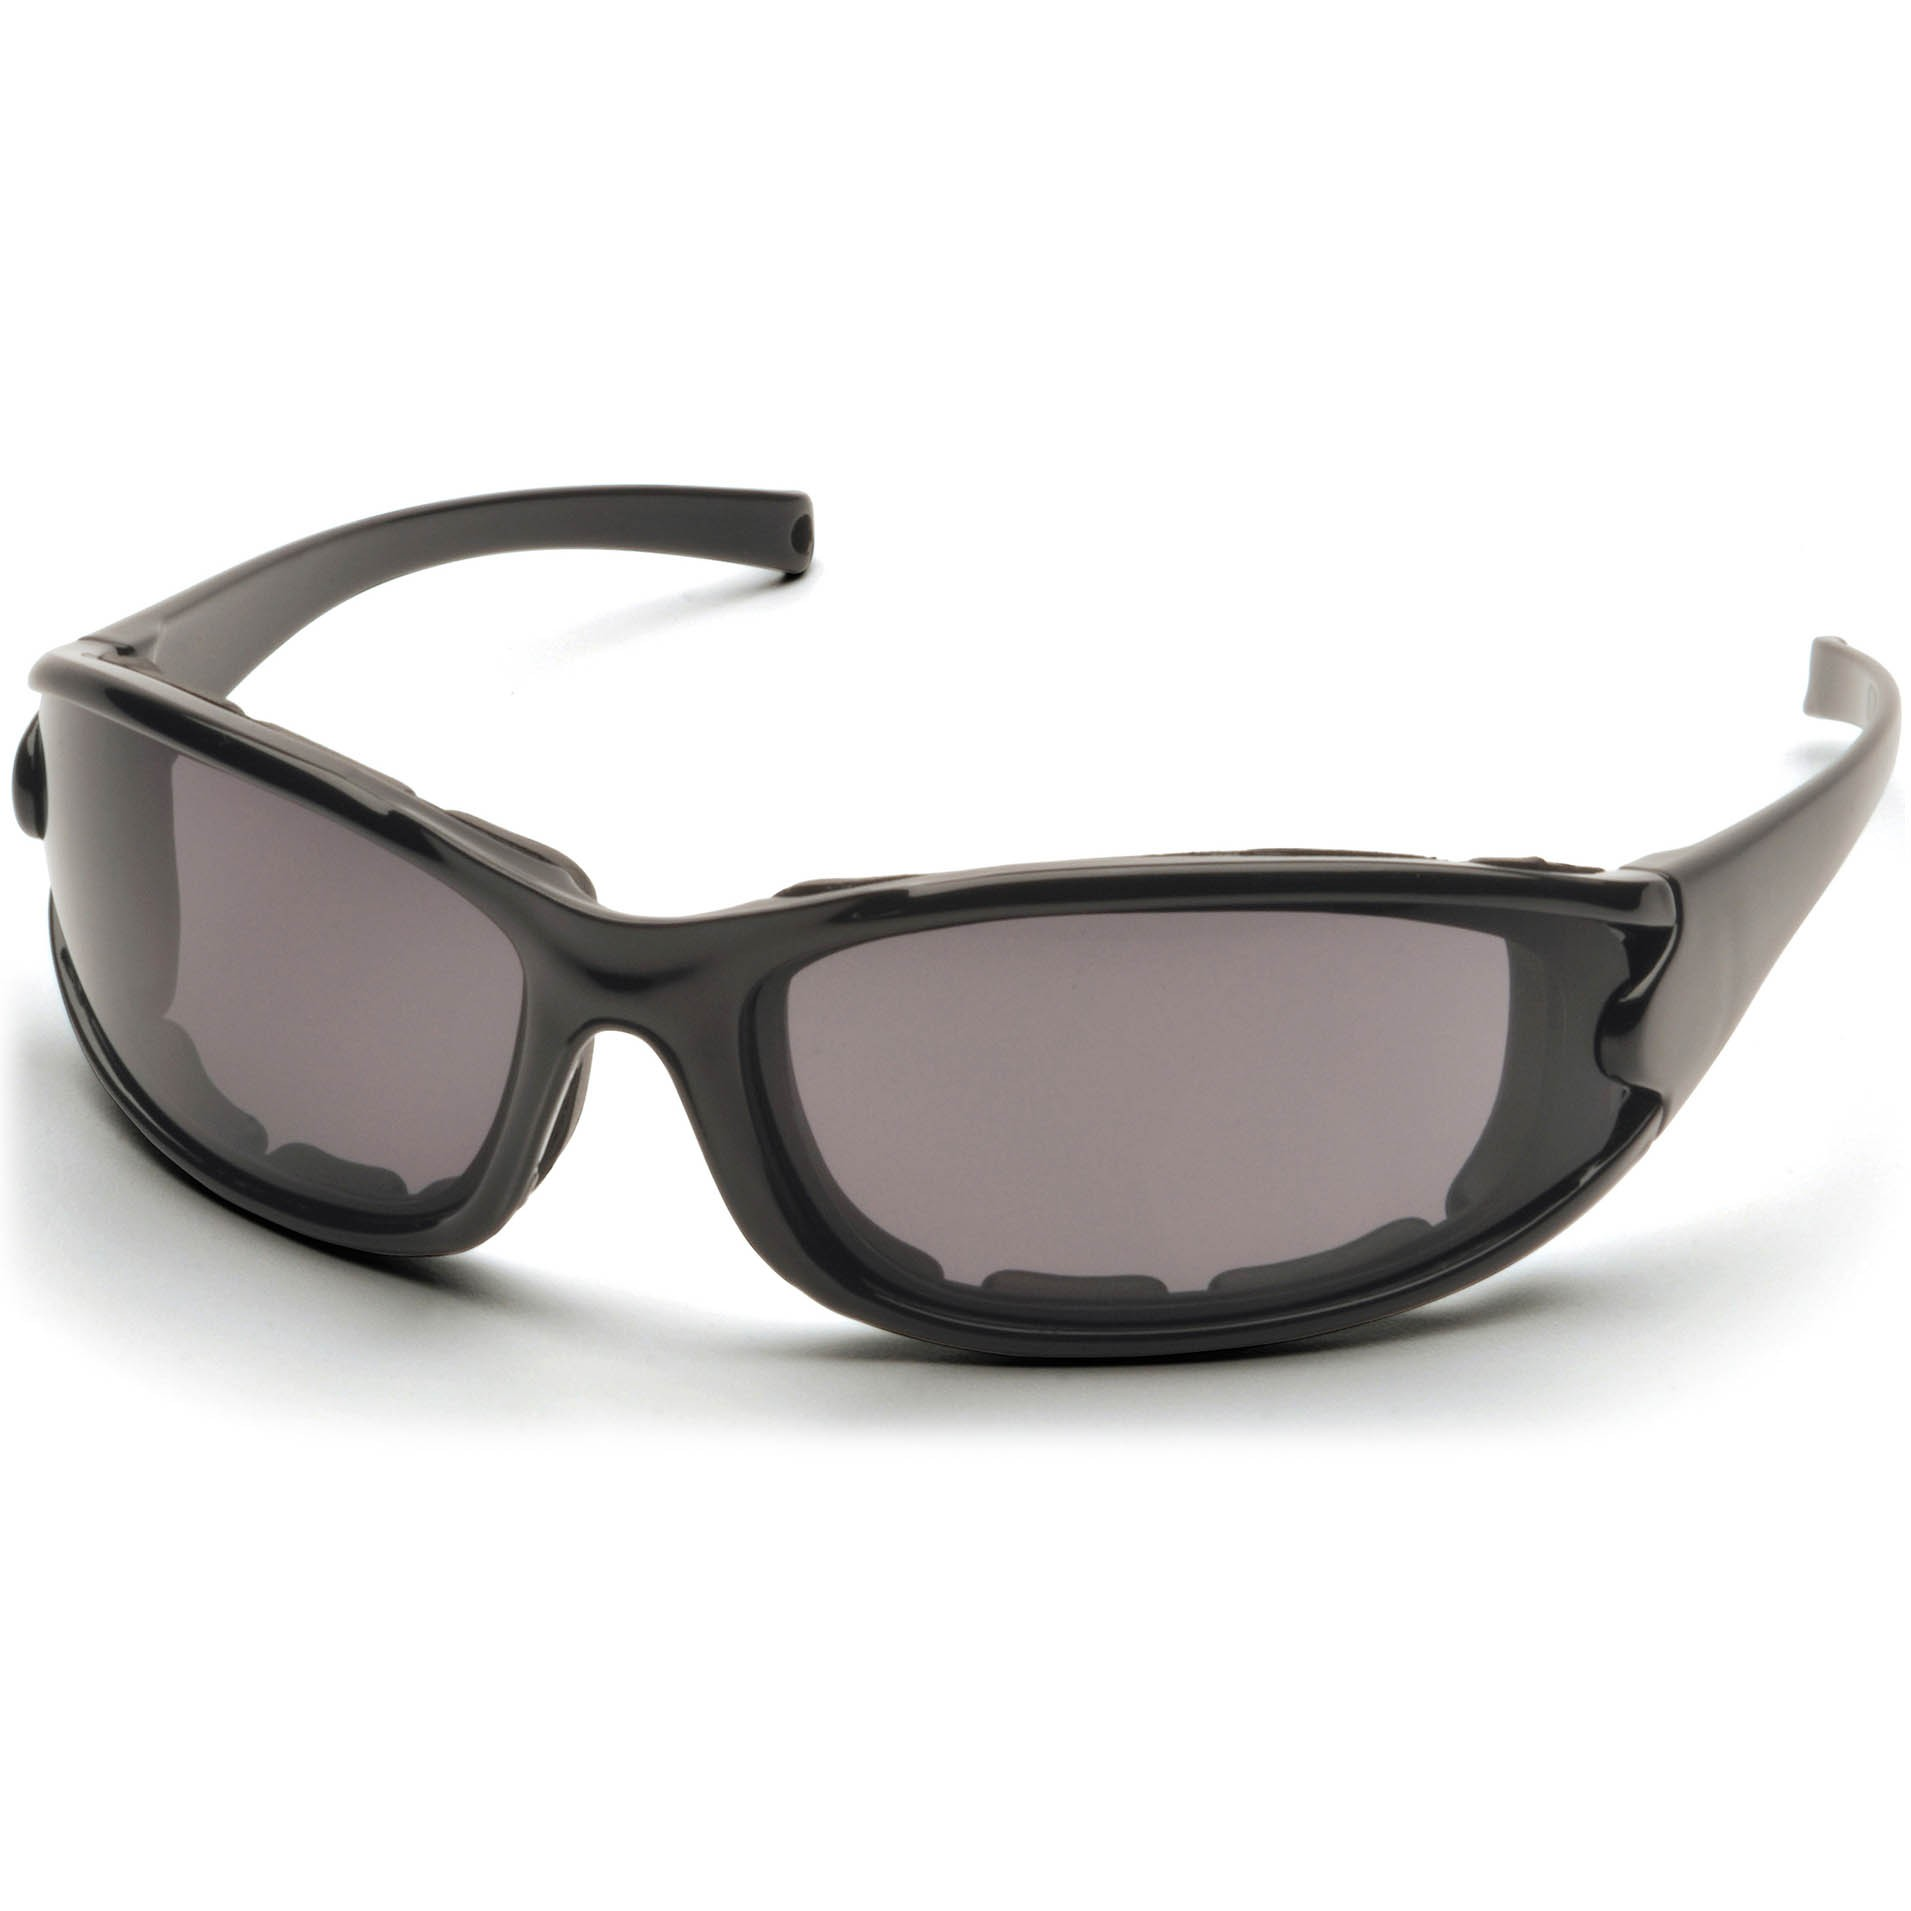 591e751caca Pyramex PMXCEL Safety Glasses - Black Foam Lined Frame - Gray Polarized  Anti-Fog Lens